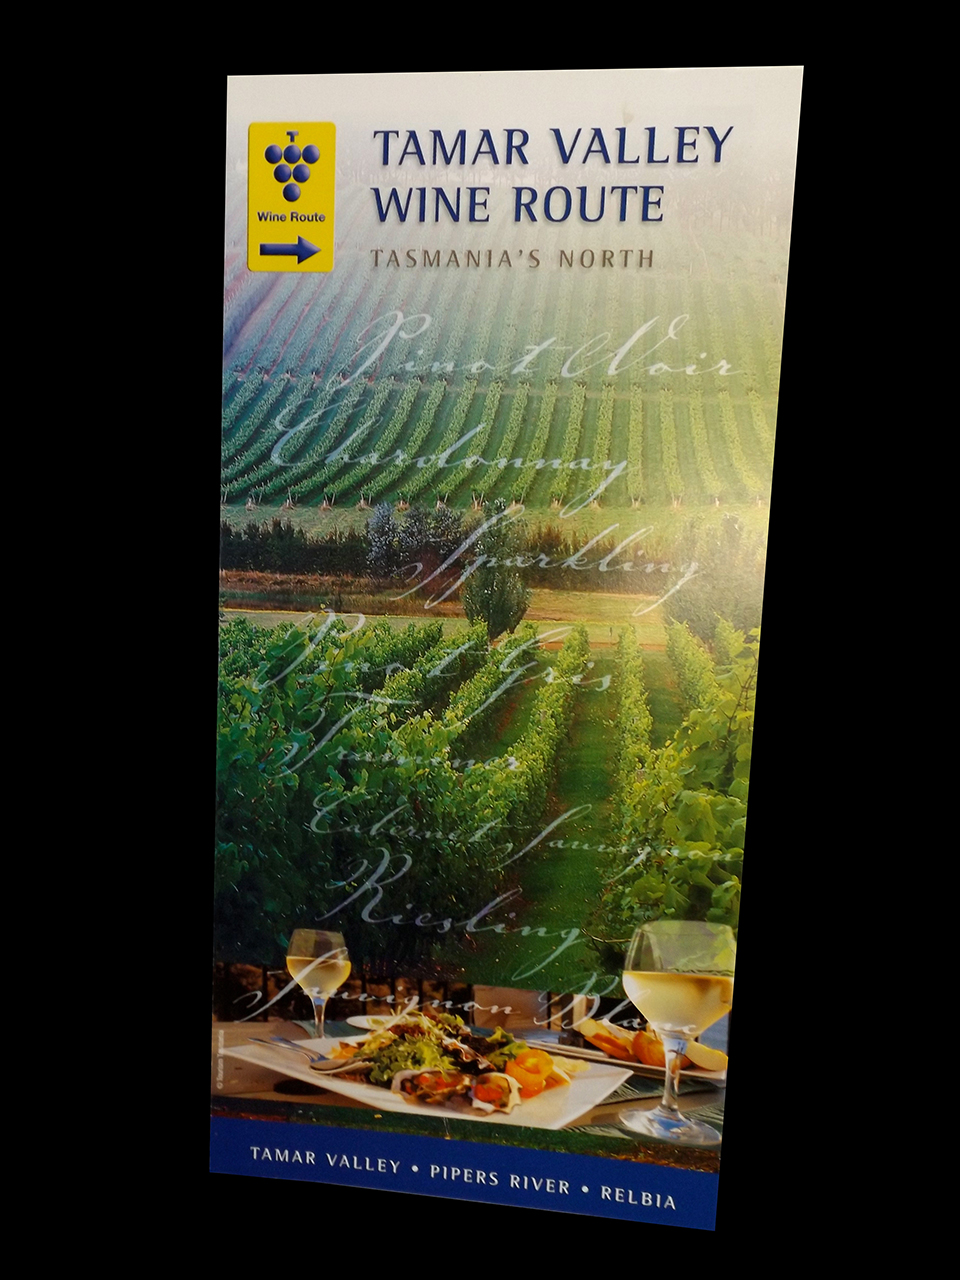 TAMAR VALLEY WINE ROUTE - Brochure and map design.